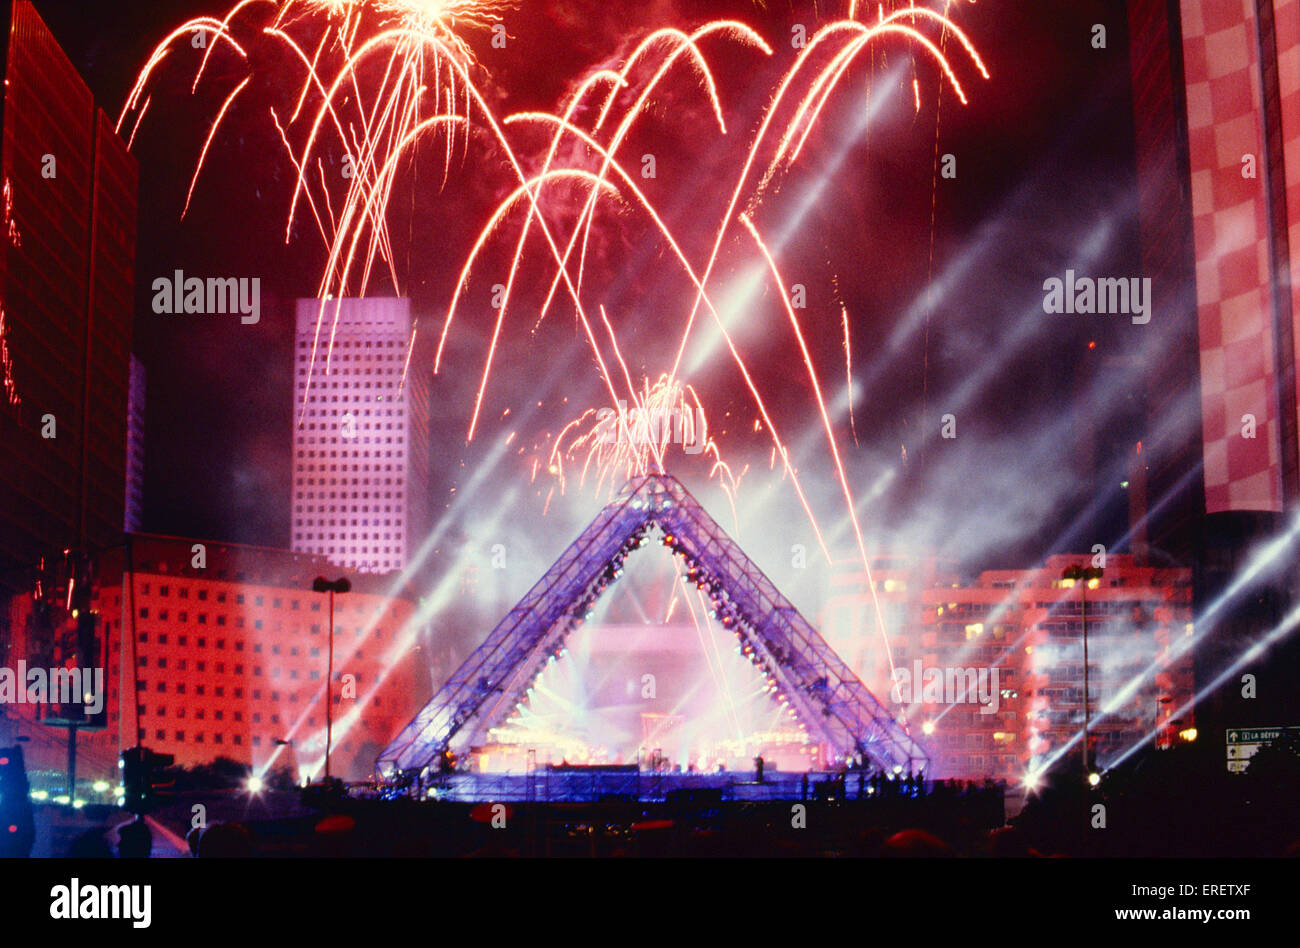 Spectacular concert given by French musician Jean-Michel Jarre at La  Défense, Paris. Bastille Day, 14 July 1990 Stock Photo - Alamy